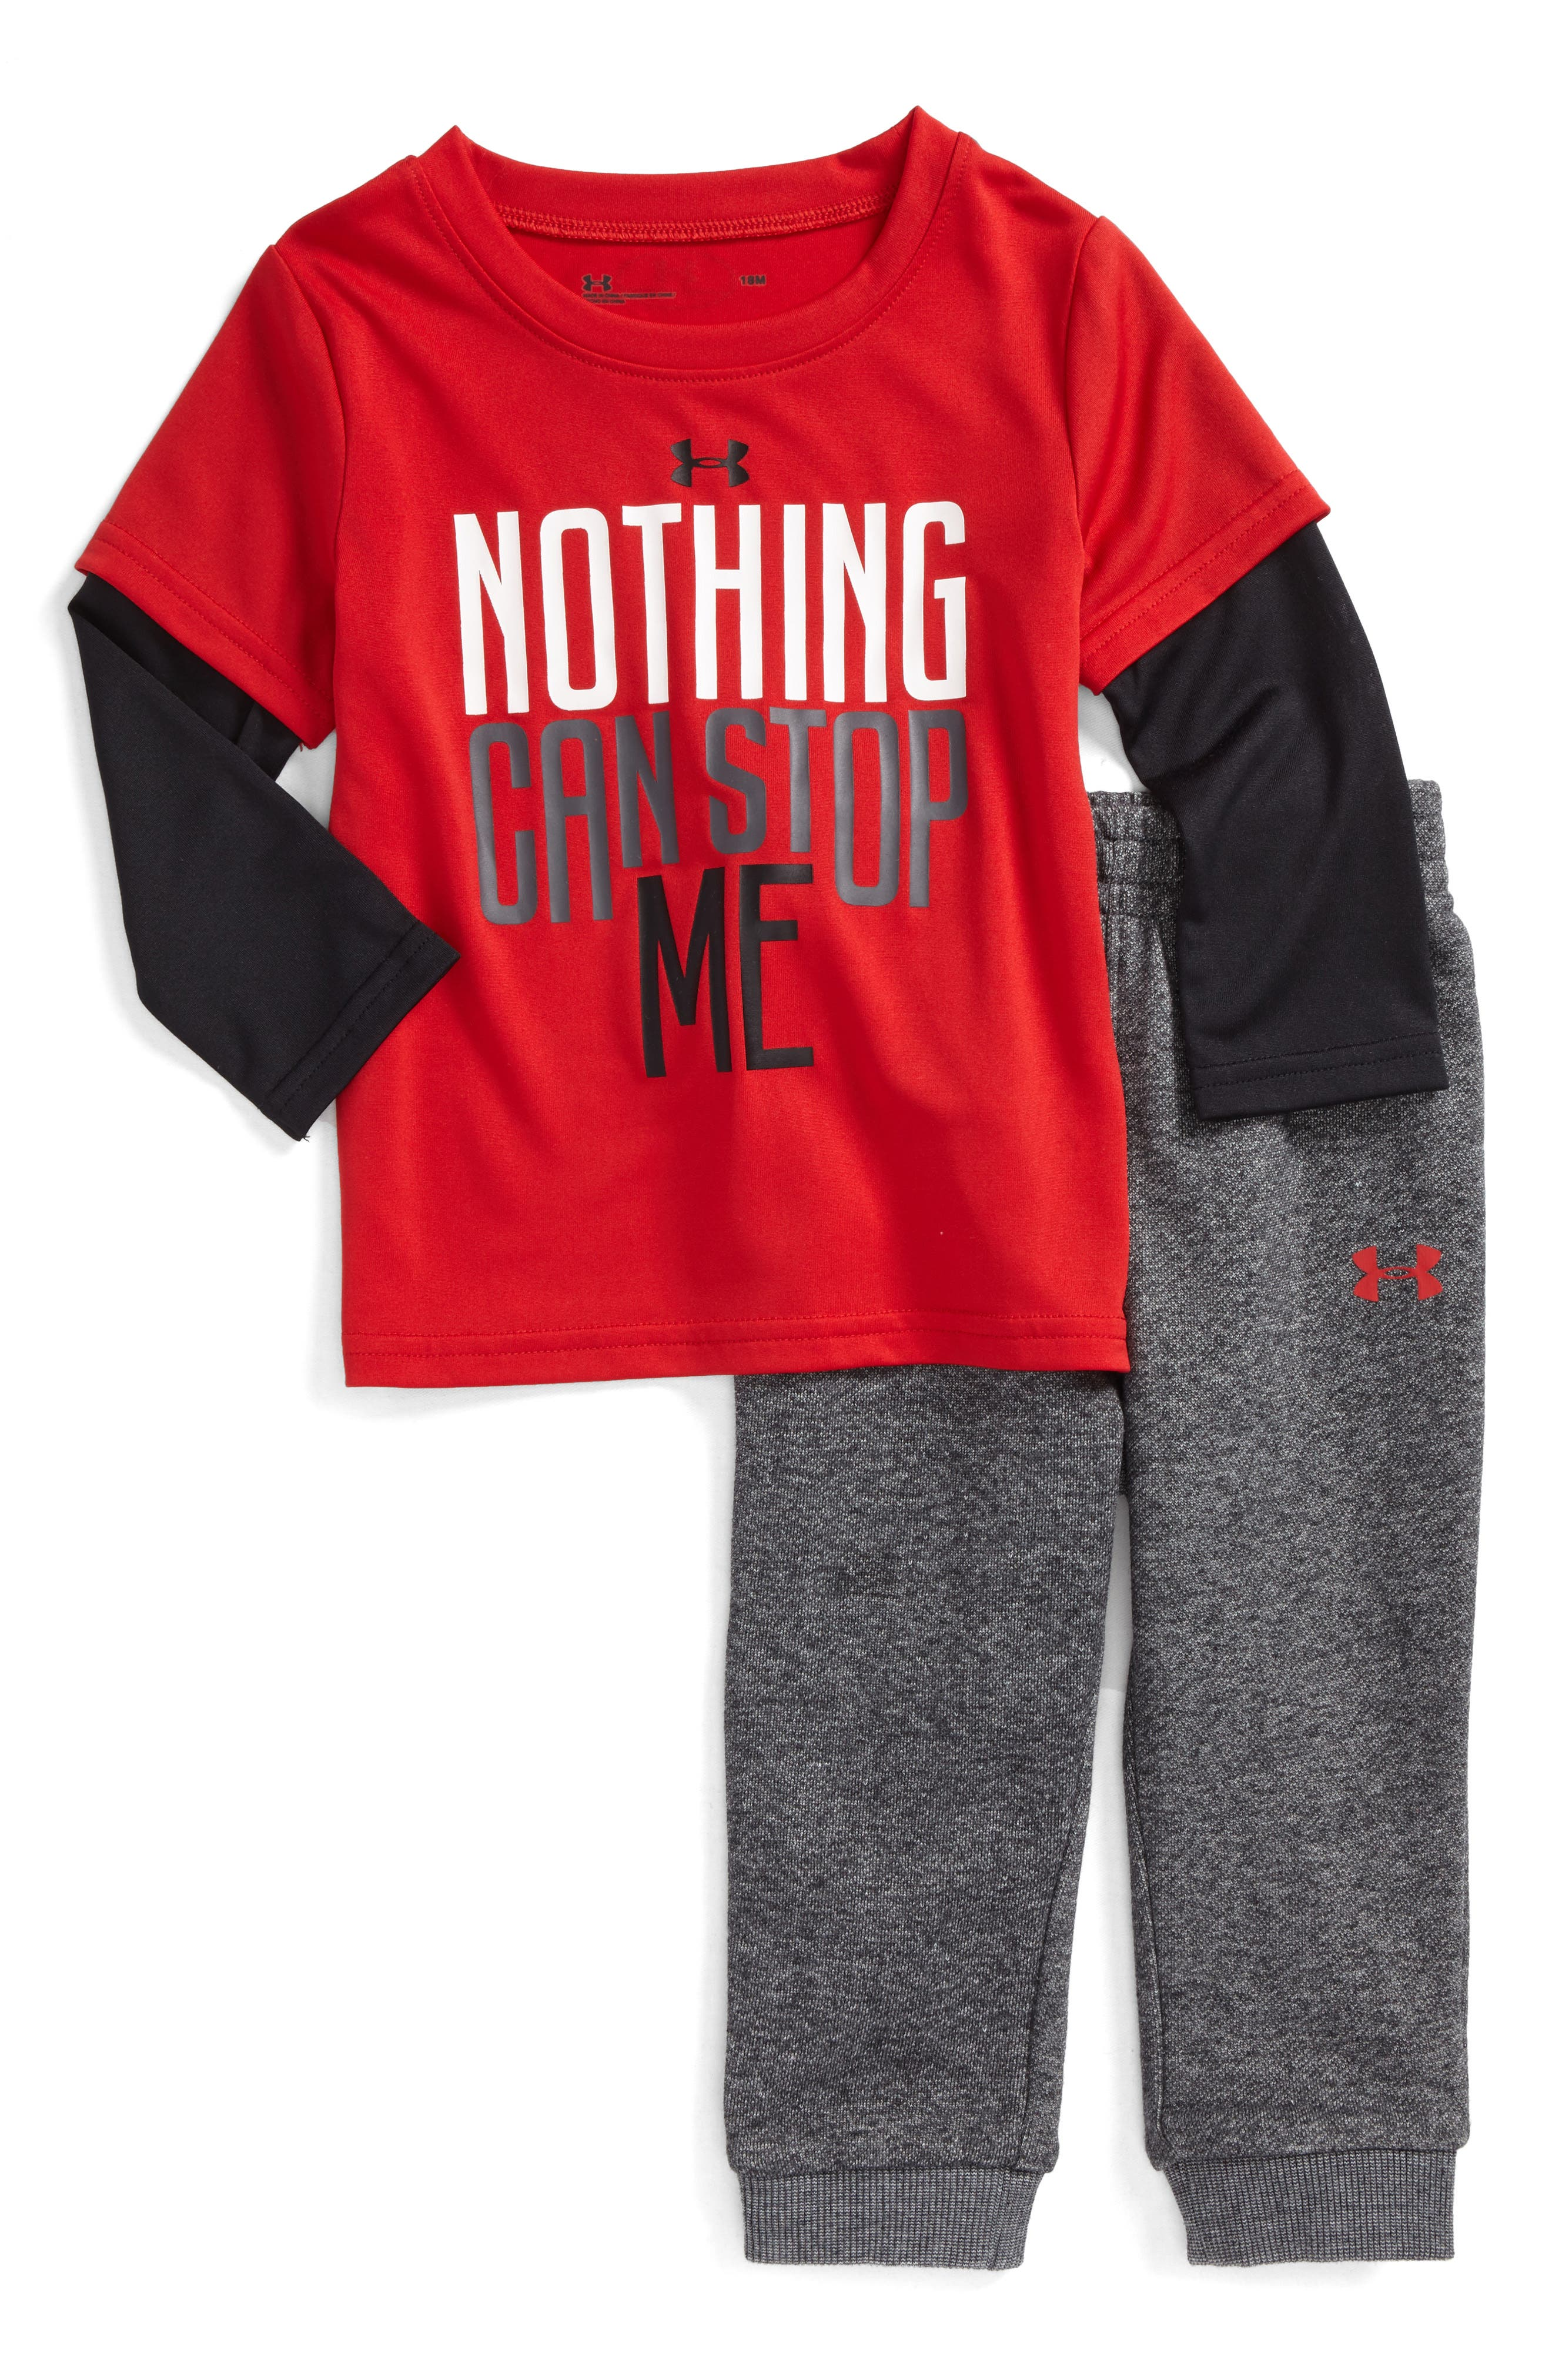 Under Armour Nothing Can Stop Me Layered T-Shirt & Sweatpants (Baby Boys)